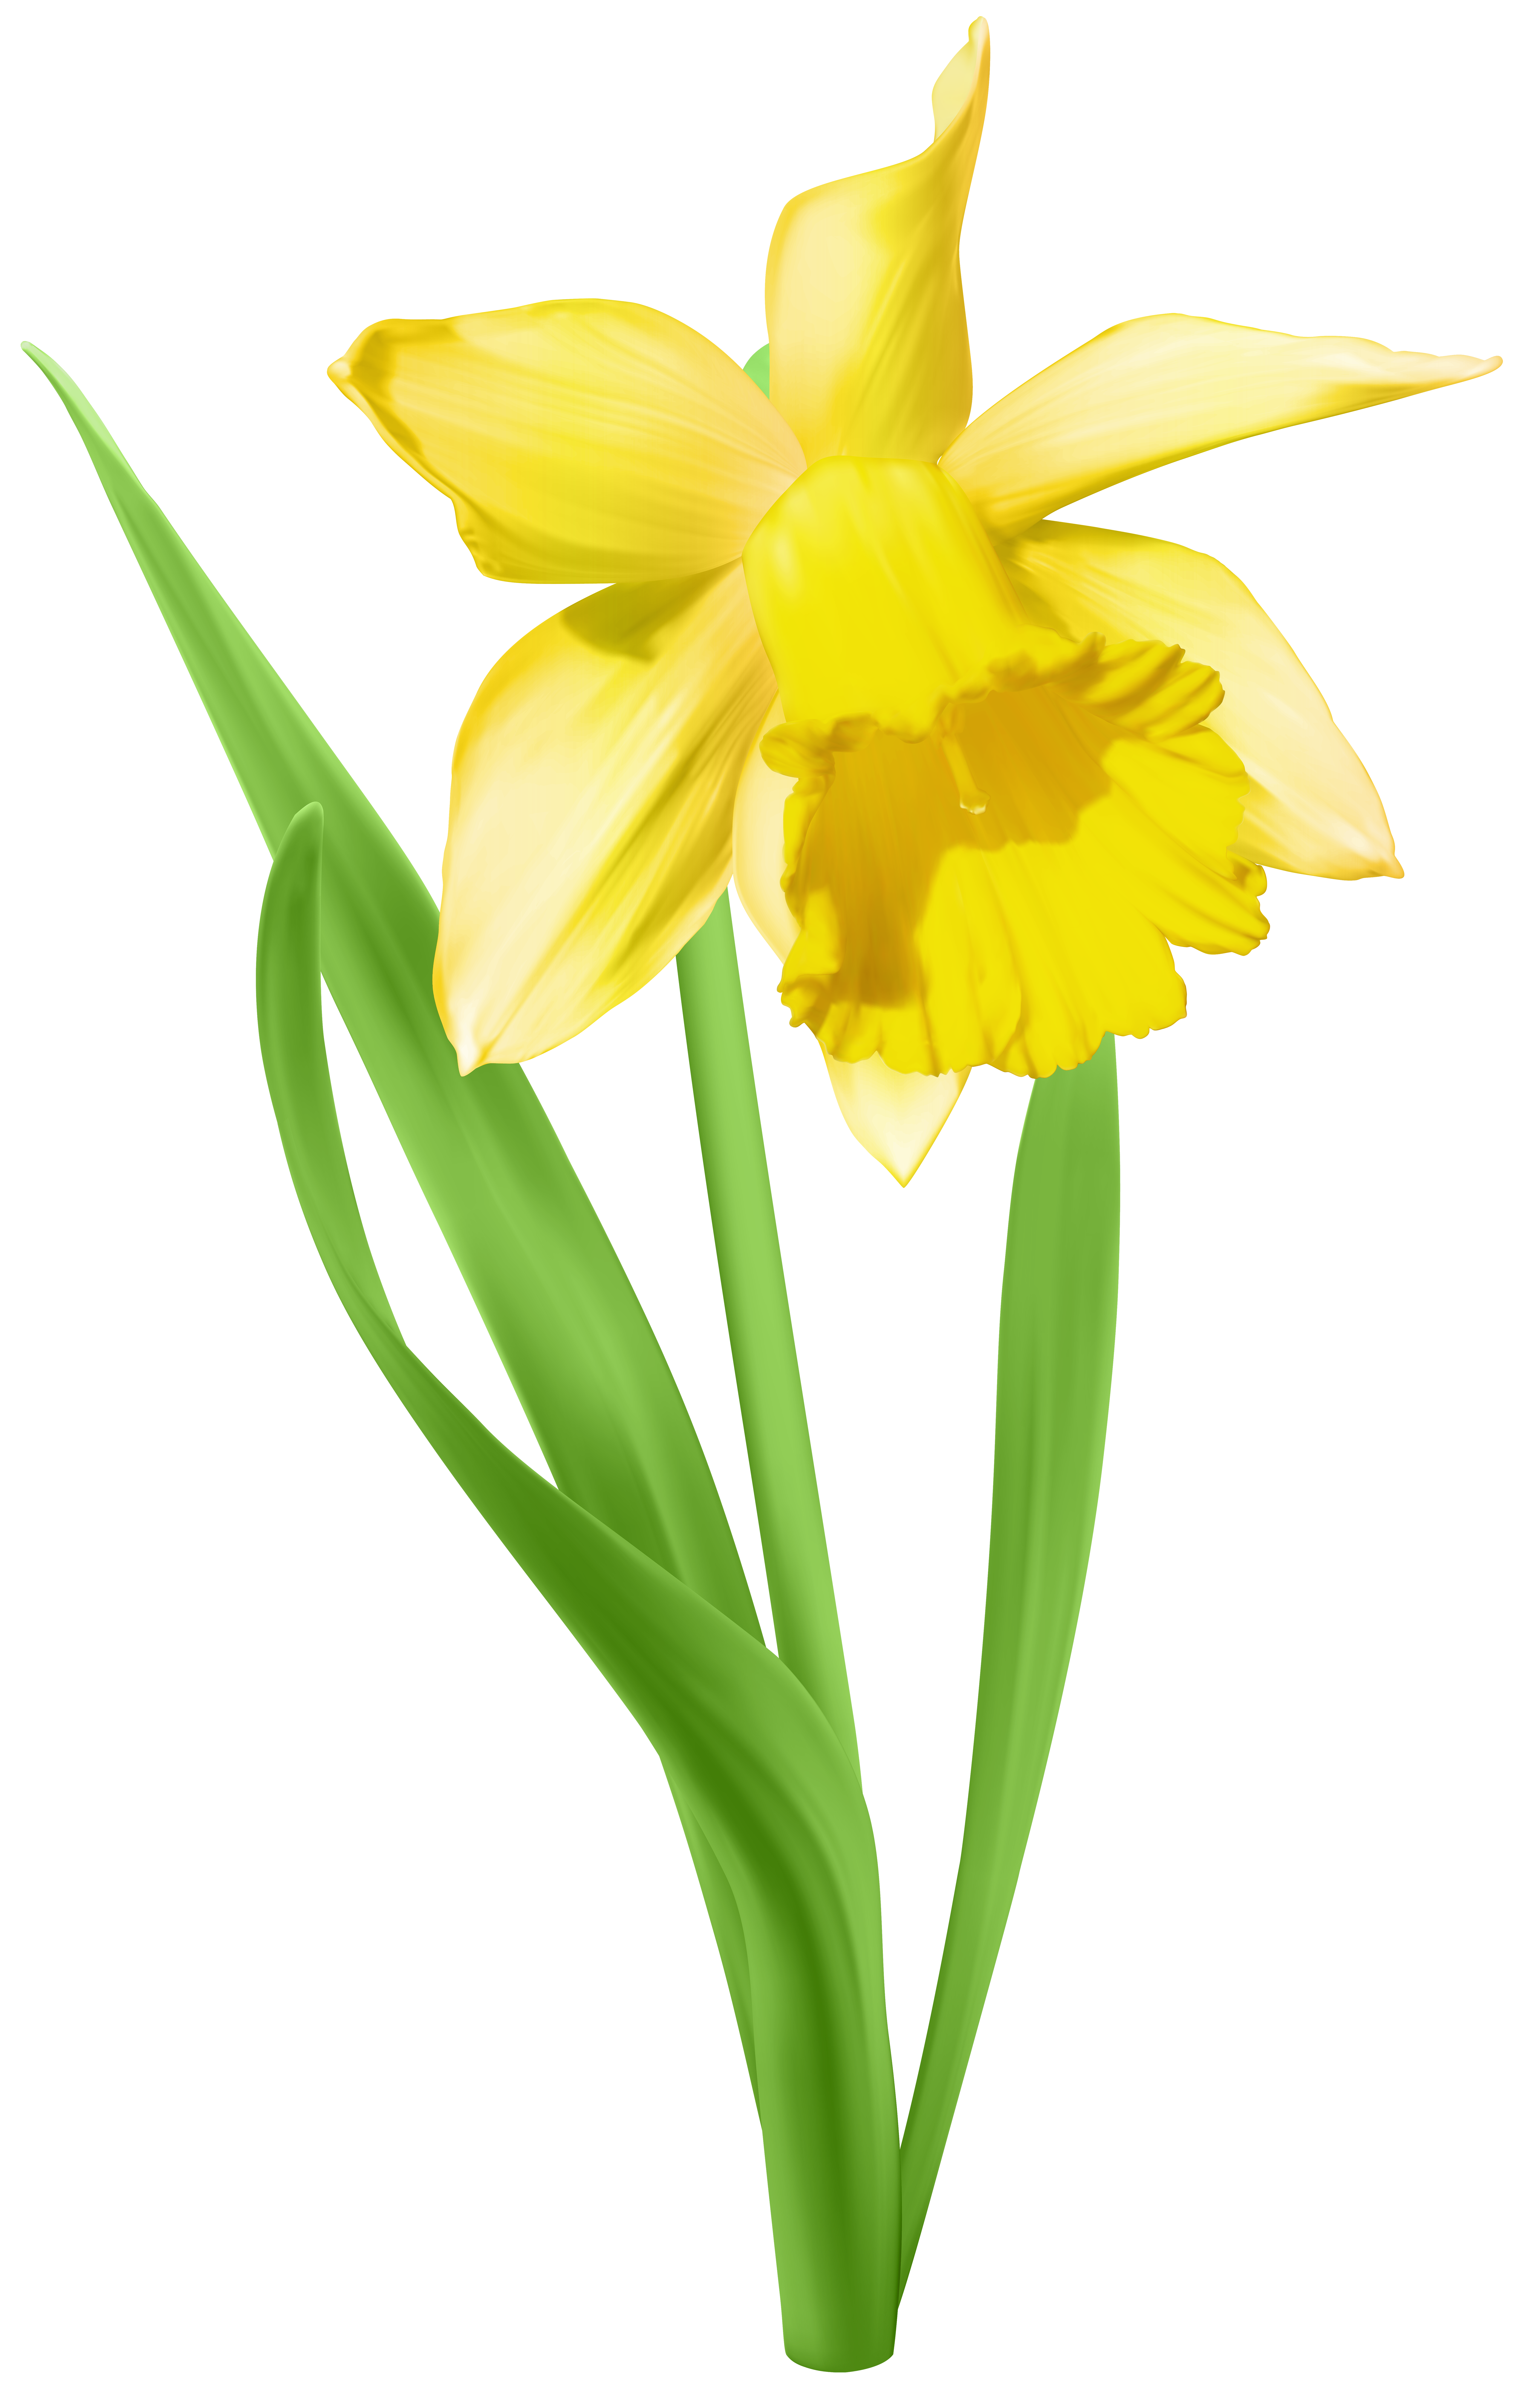 Clipart borders daffodil. Transparent background